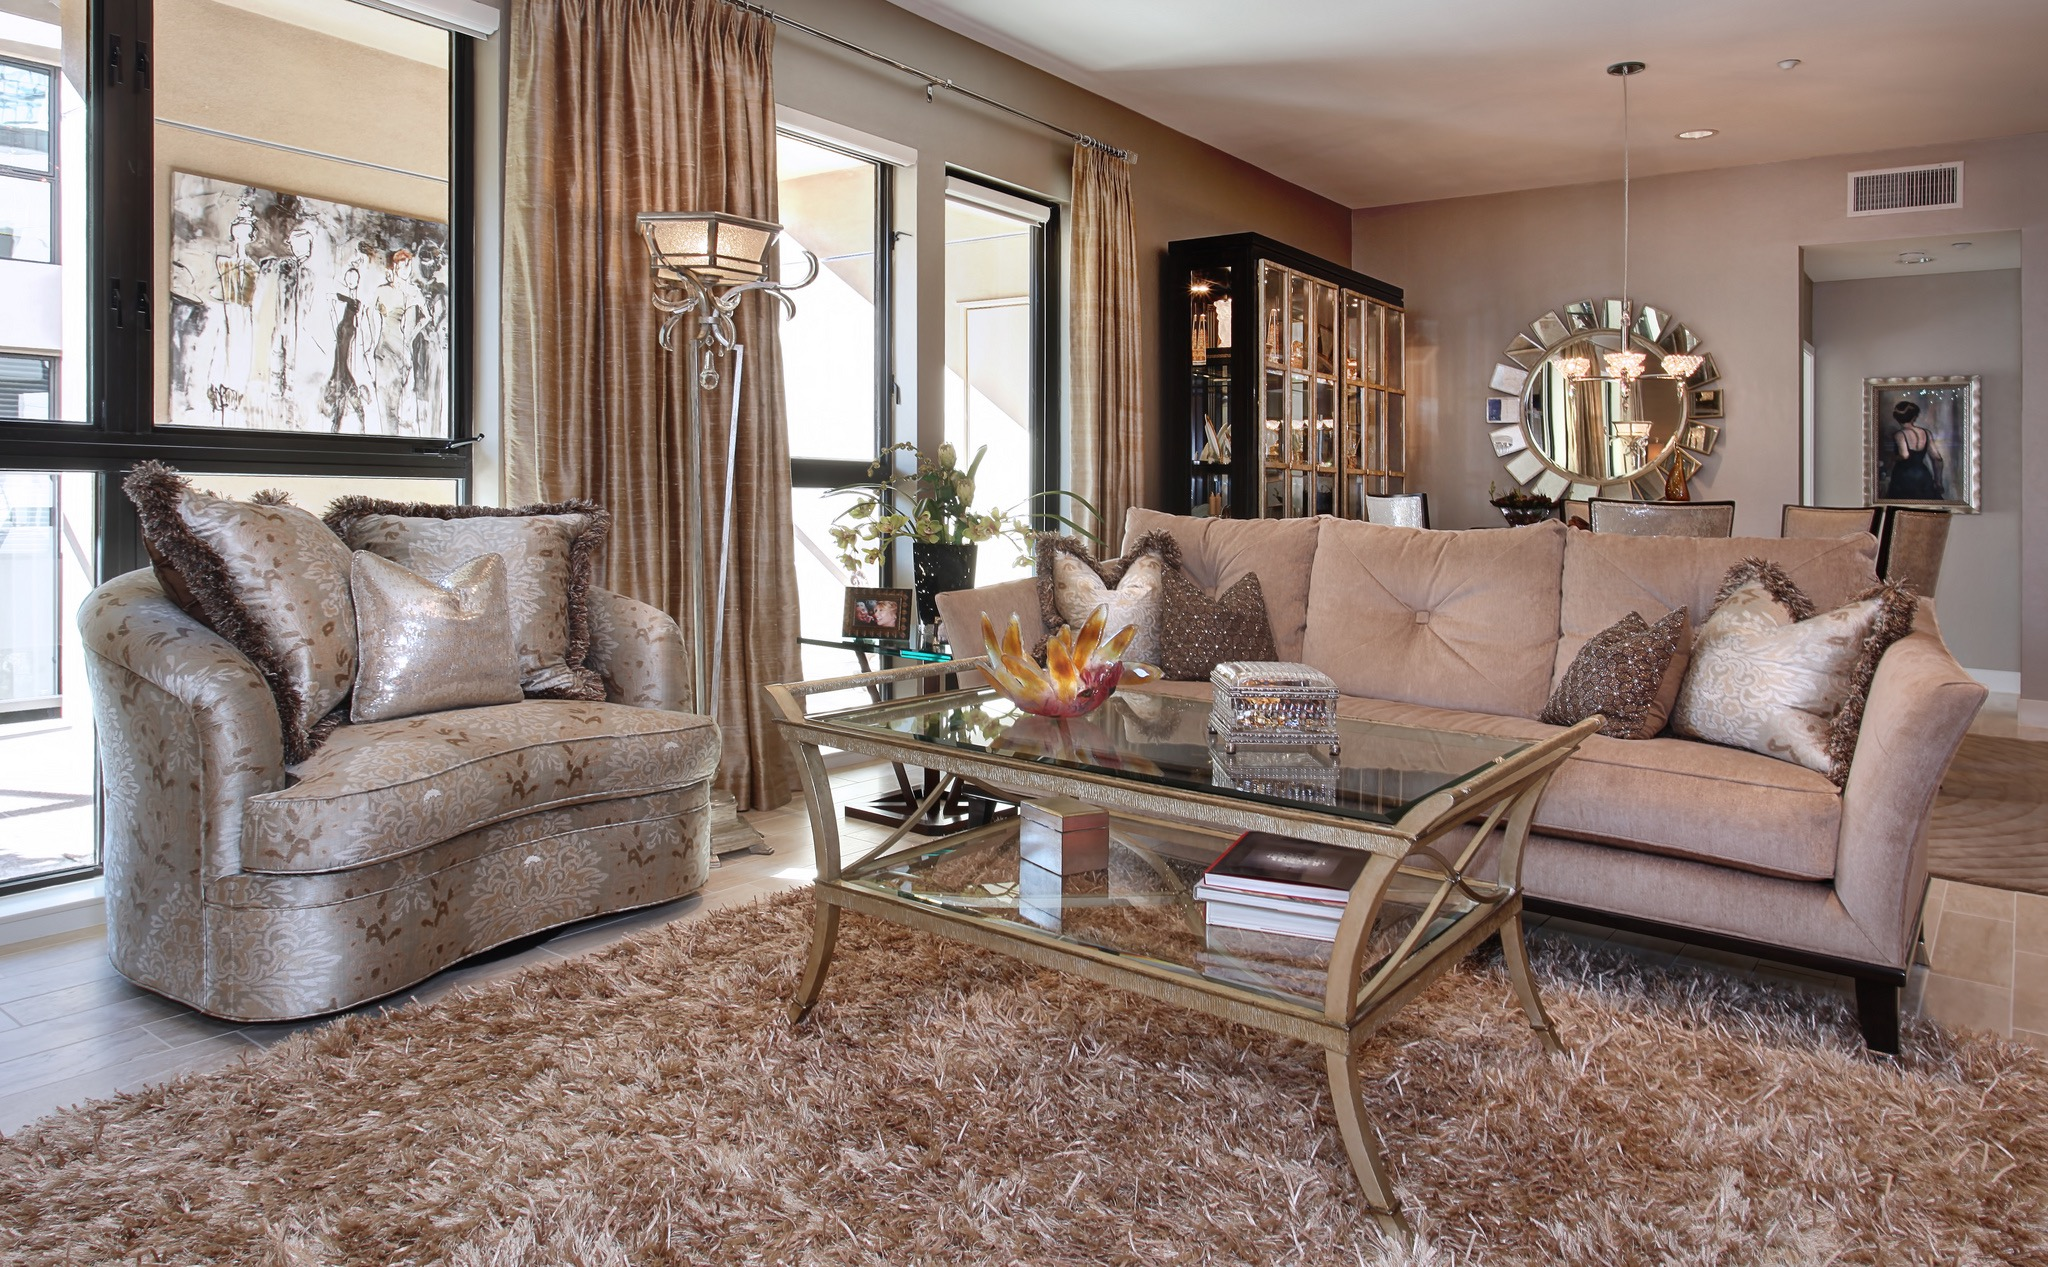 Glamorous Living Room With Feminine Look (Image 10 of 32)